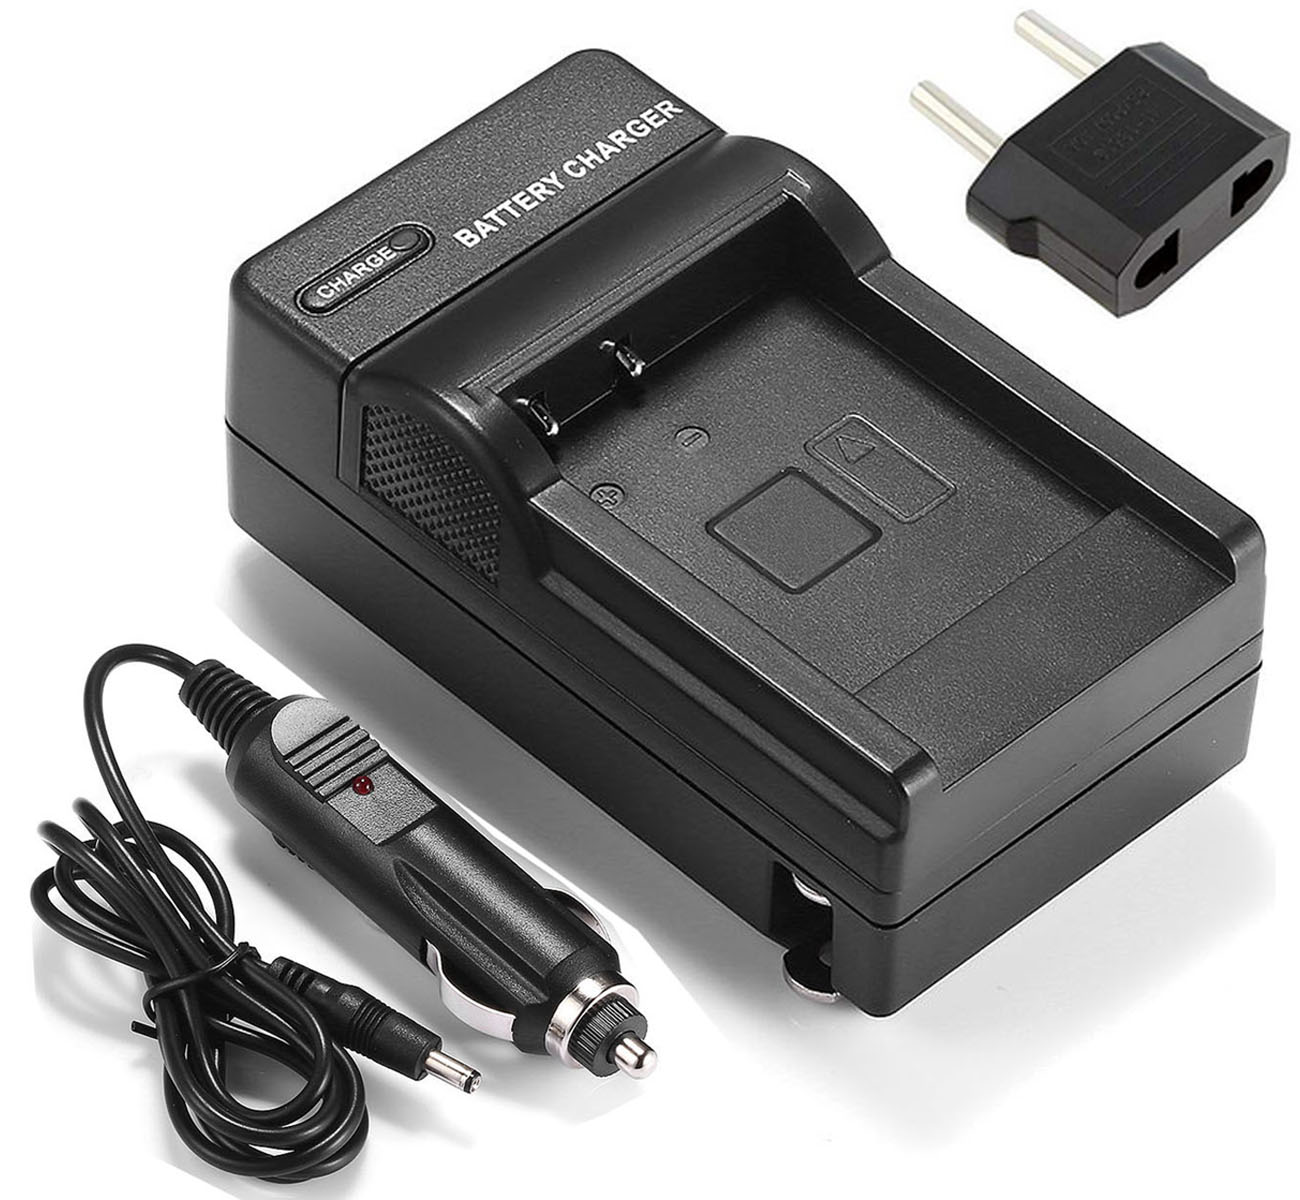 USB Dual Battery Charger for Canon FS100 FS200 FS300 FS400 Flash Memory Camcorder